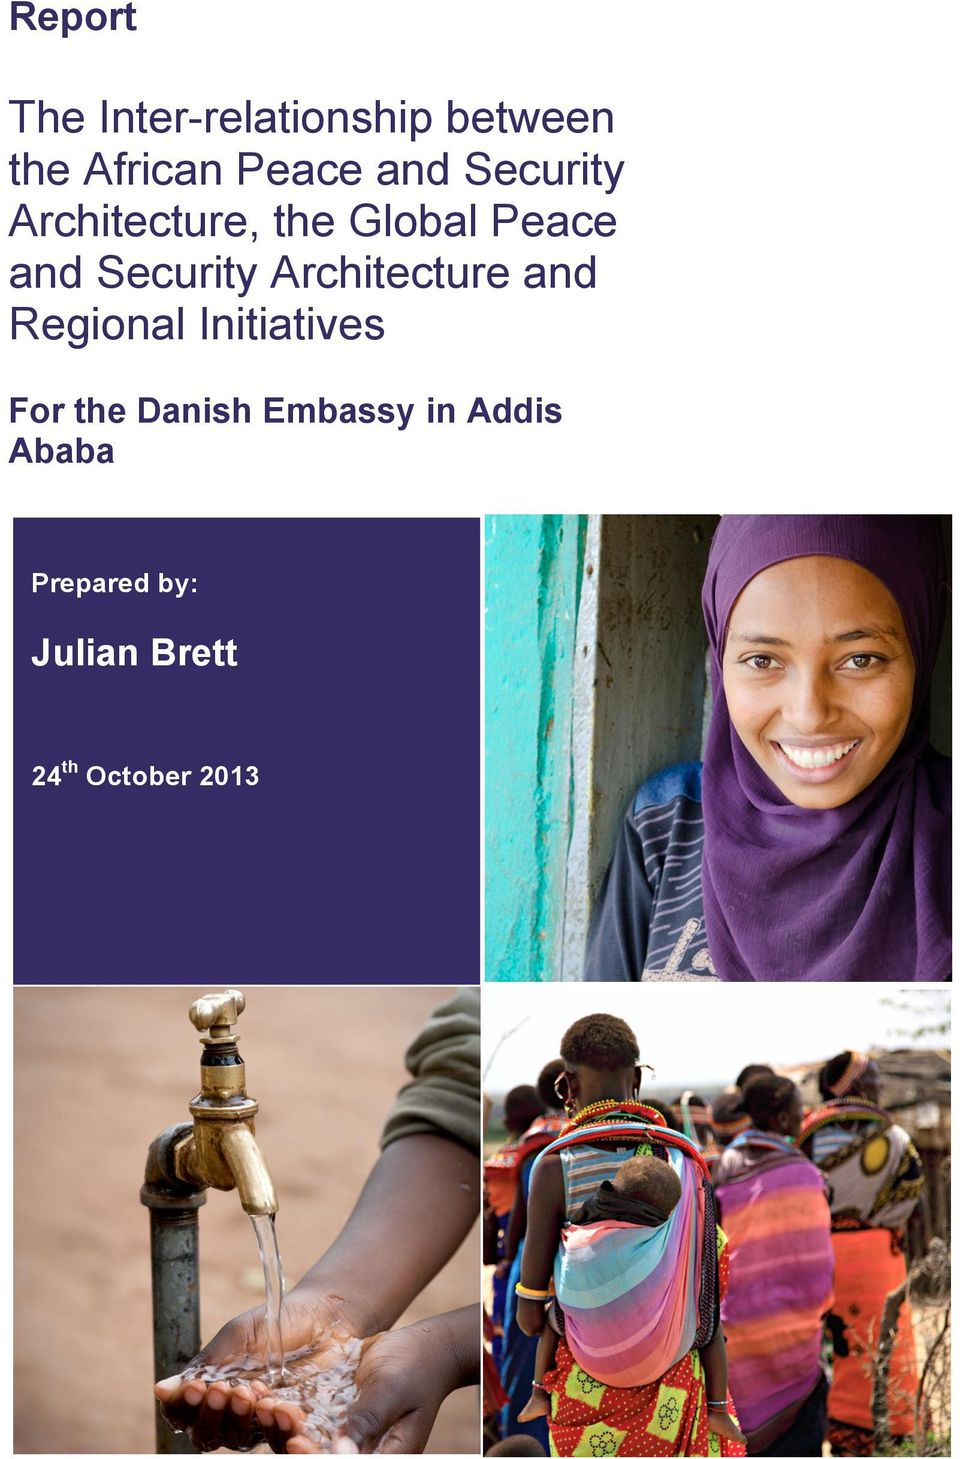 Architecture and Regional Initiatives For the Danish